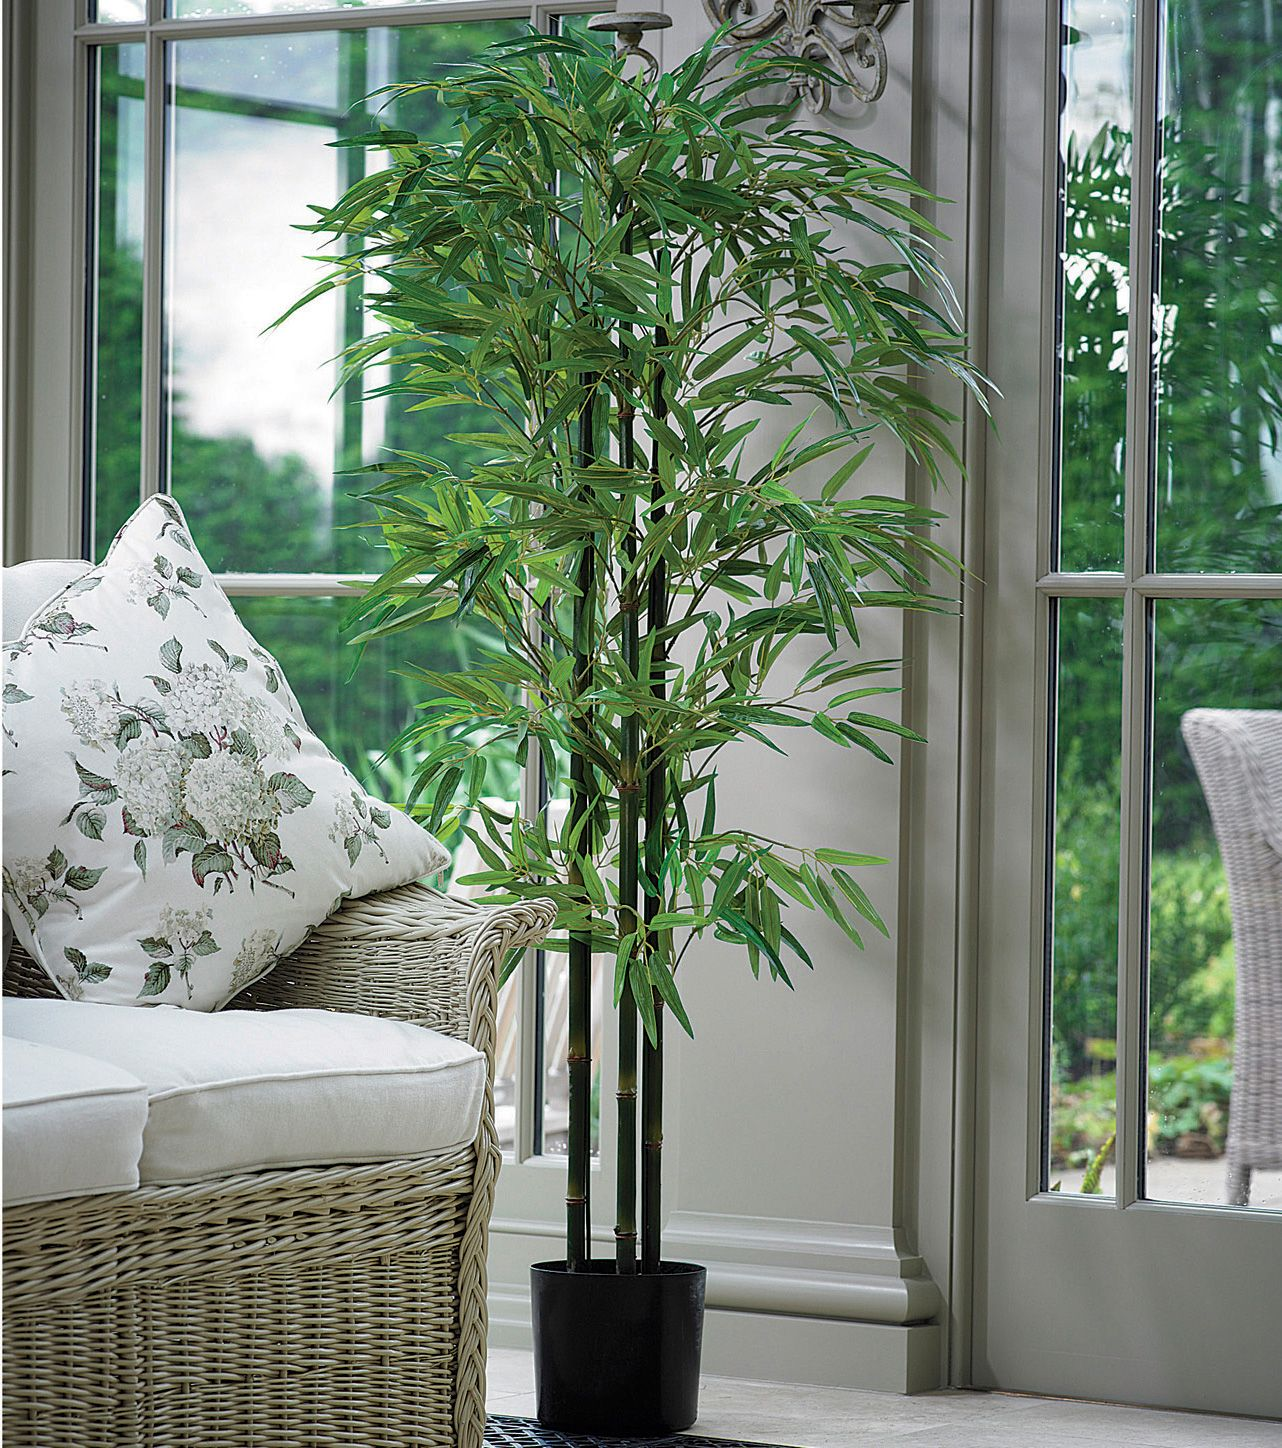 Buy 5 Artificial Potted Bamboo Tree Online At Bloom Artificial Plants Outdoor Small Artificial Plants Artificial Plants Decor